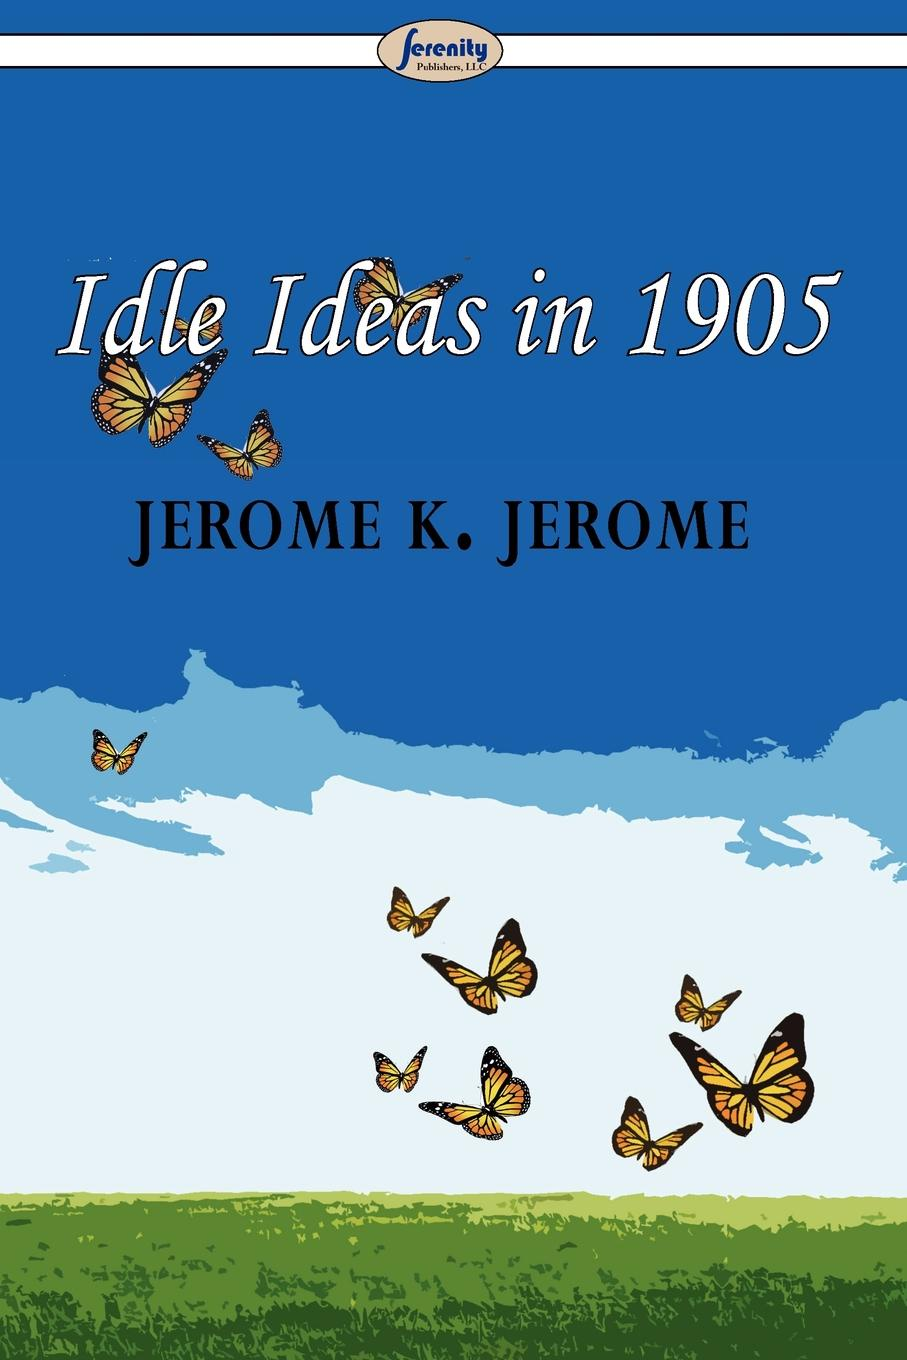 Jerome K. Jerome Idle Ideas in 1905